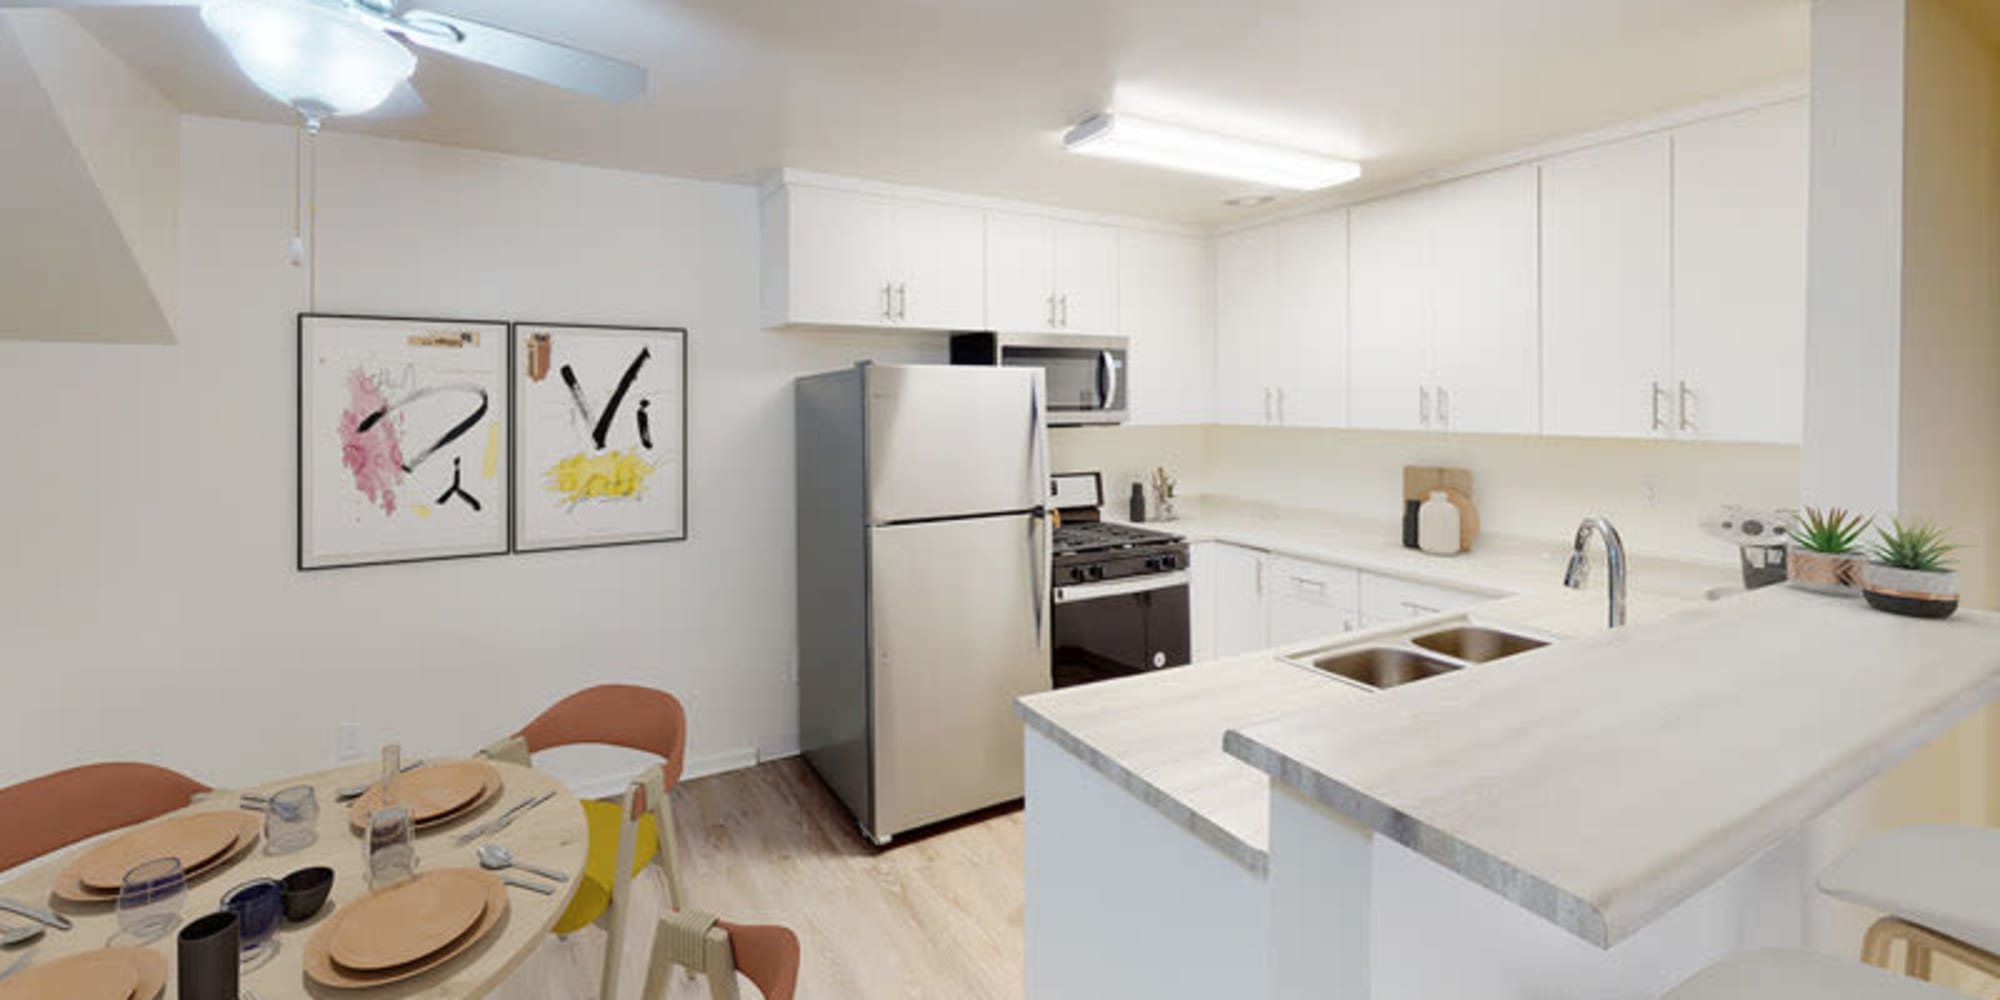 Open kitchen of a one bedroom apartment at West Park Village in Los Angeles, California